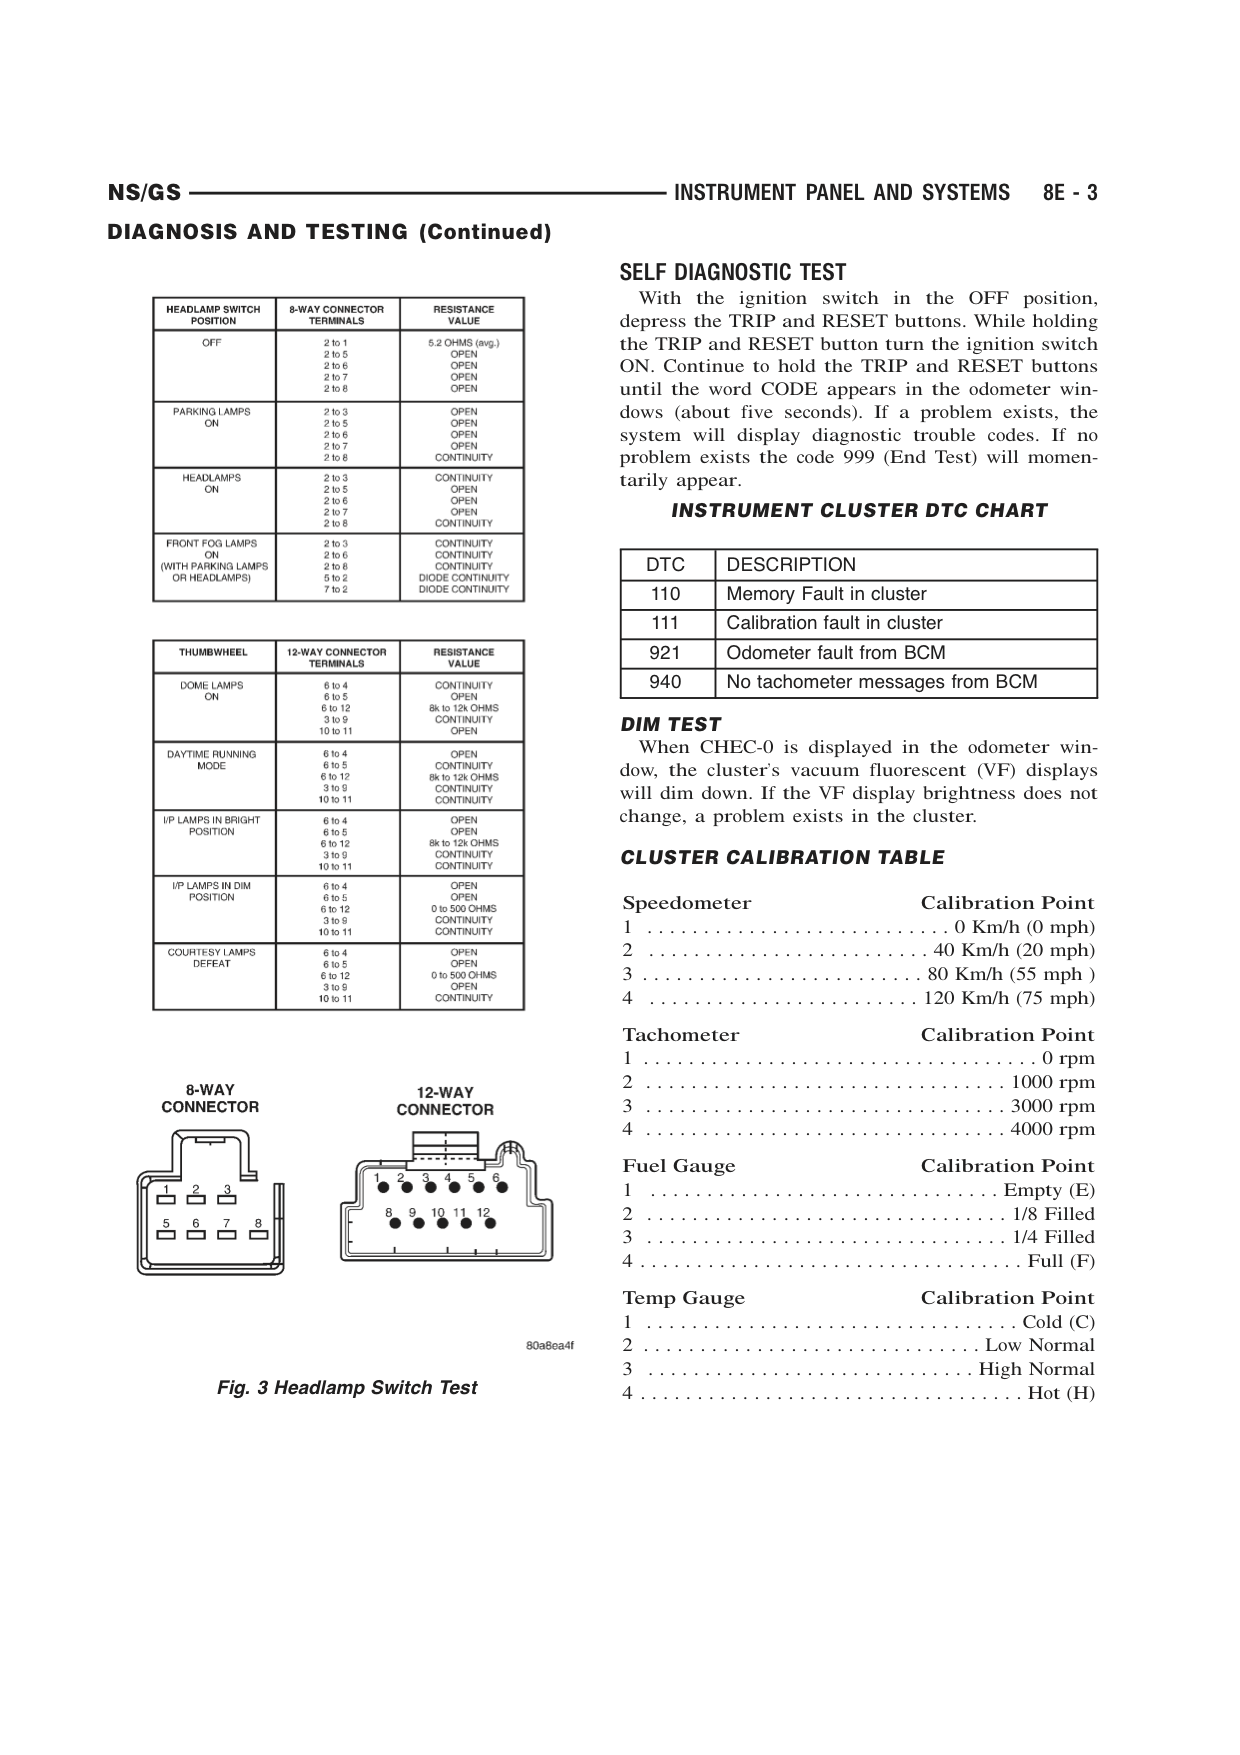 Ebook-5324] 2000 chrysler voyager owners manual   2019 ebook library.